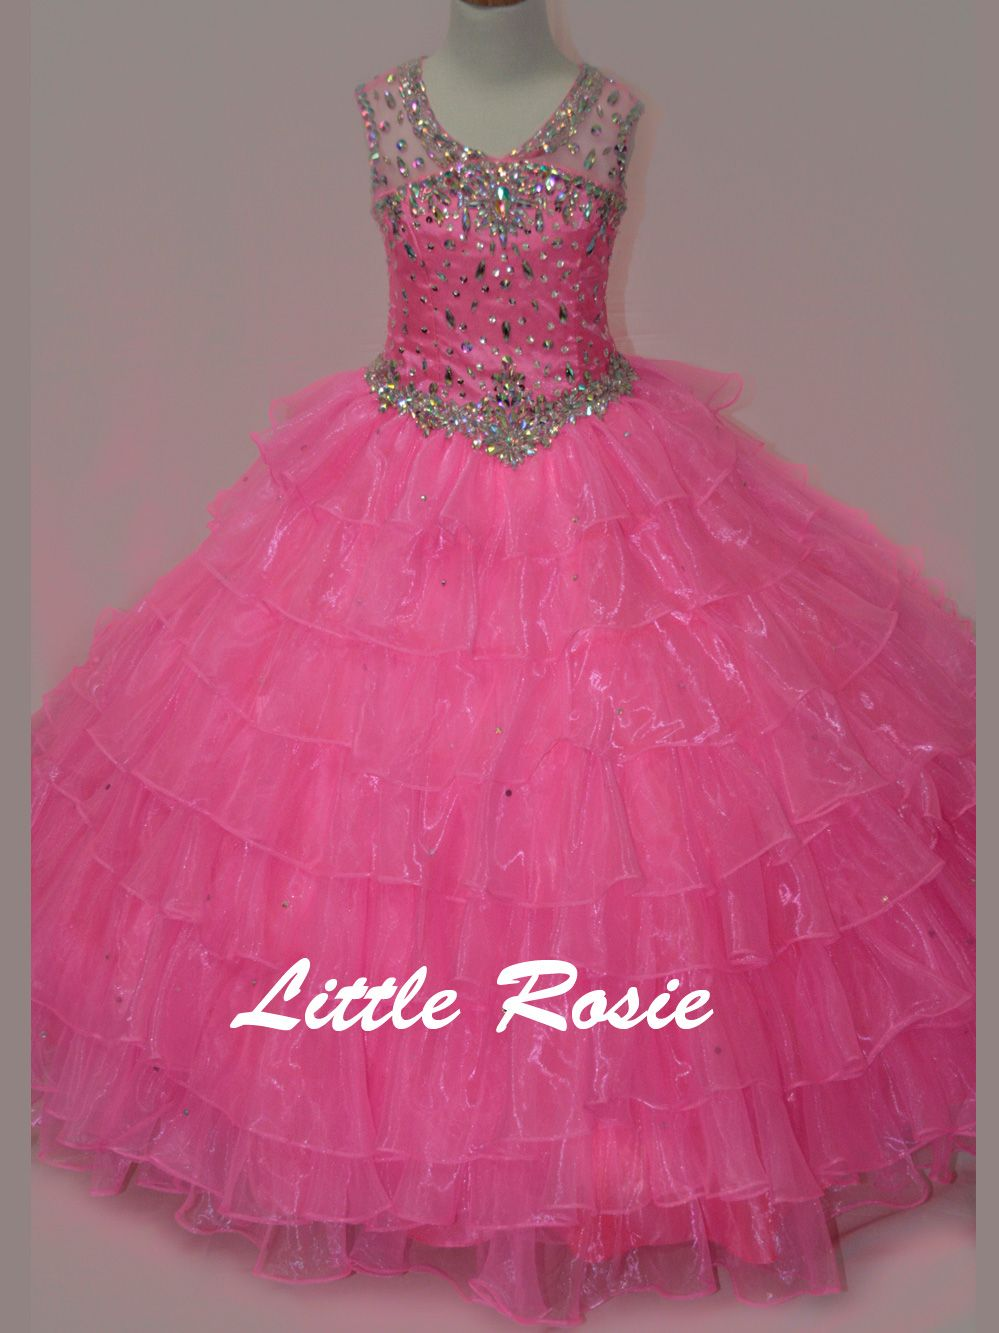 17 Best images about Little Rosie Ballgown Dresses! on Pinterest ...